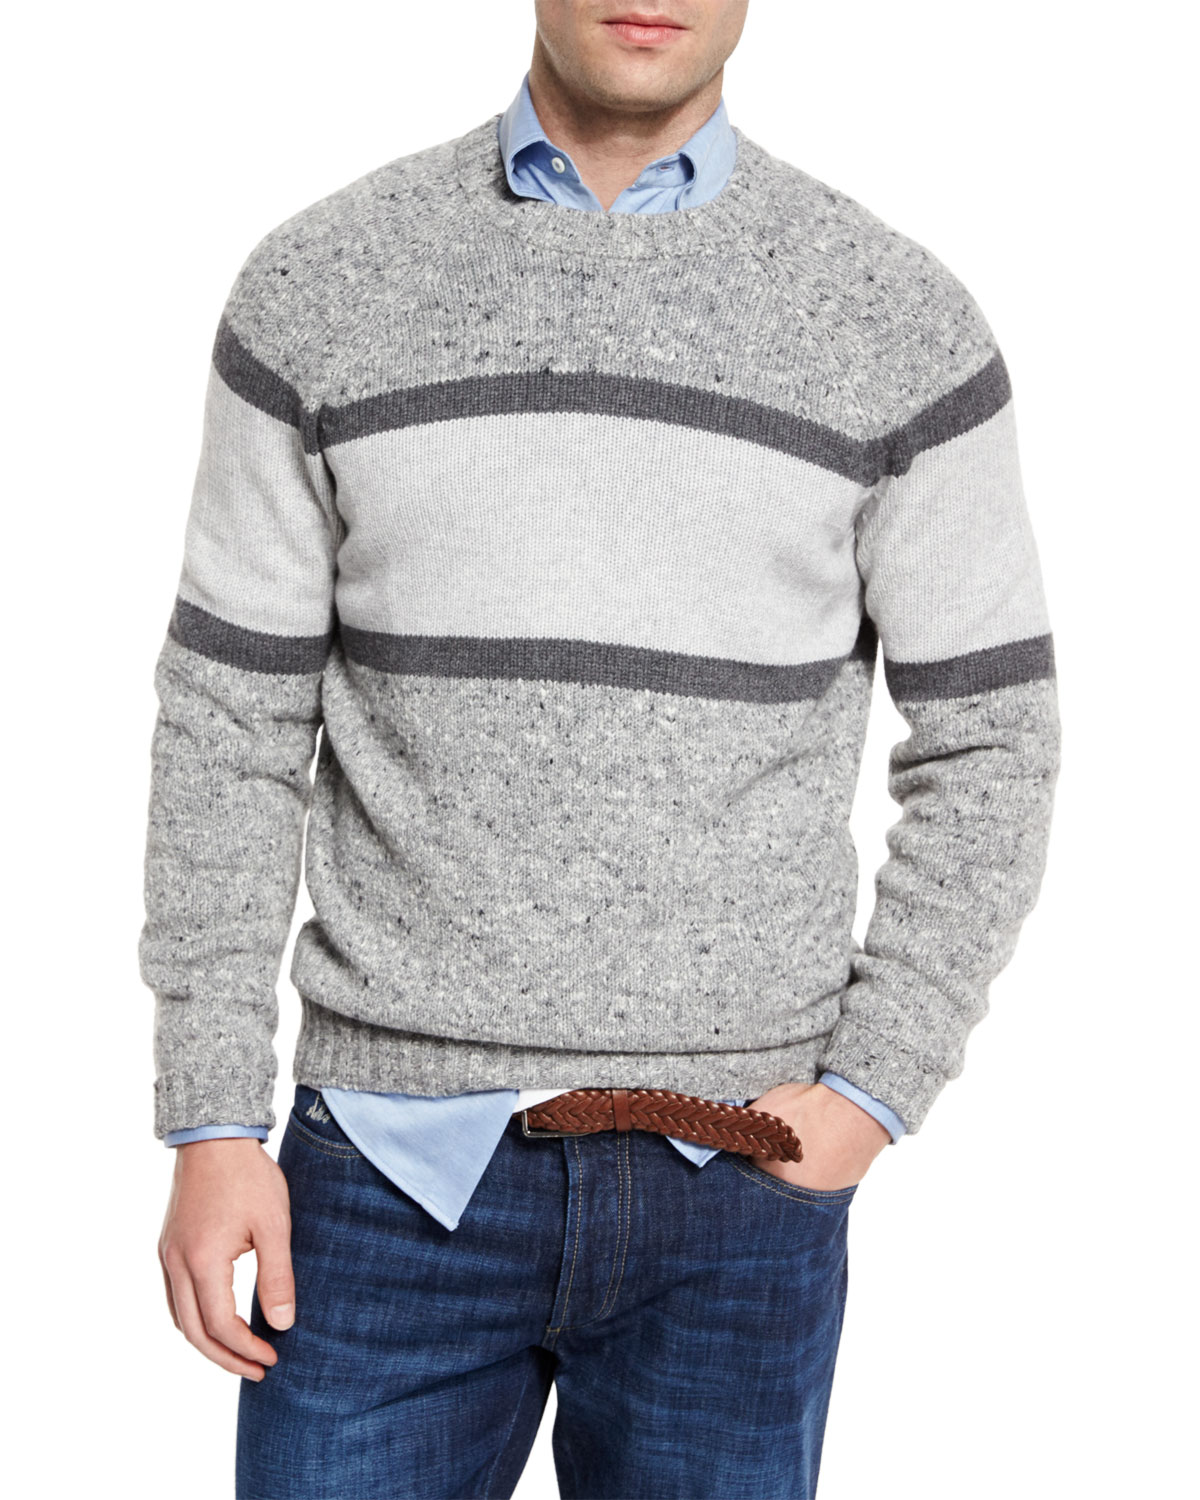 Brunello Cucinelli  STRIPED DONEGAL CREWNECK SWEATER, GRAY